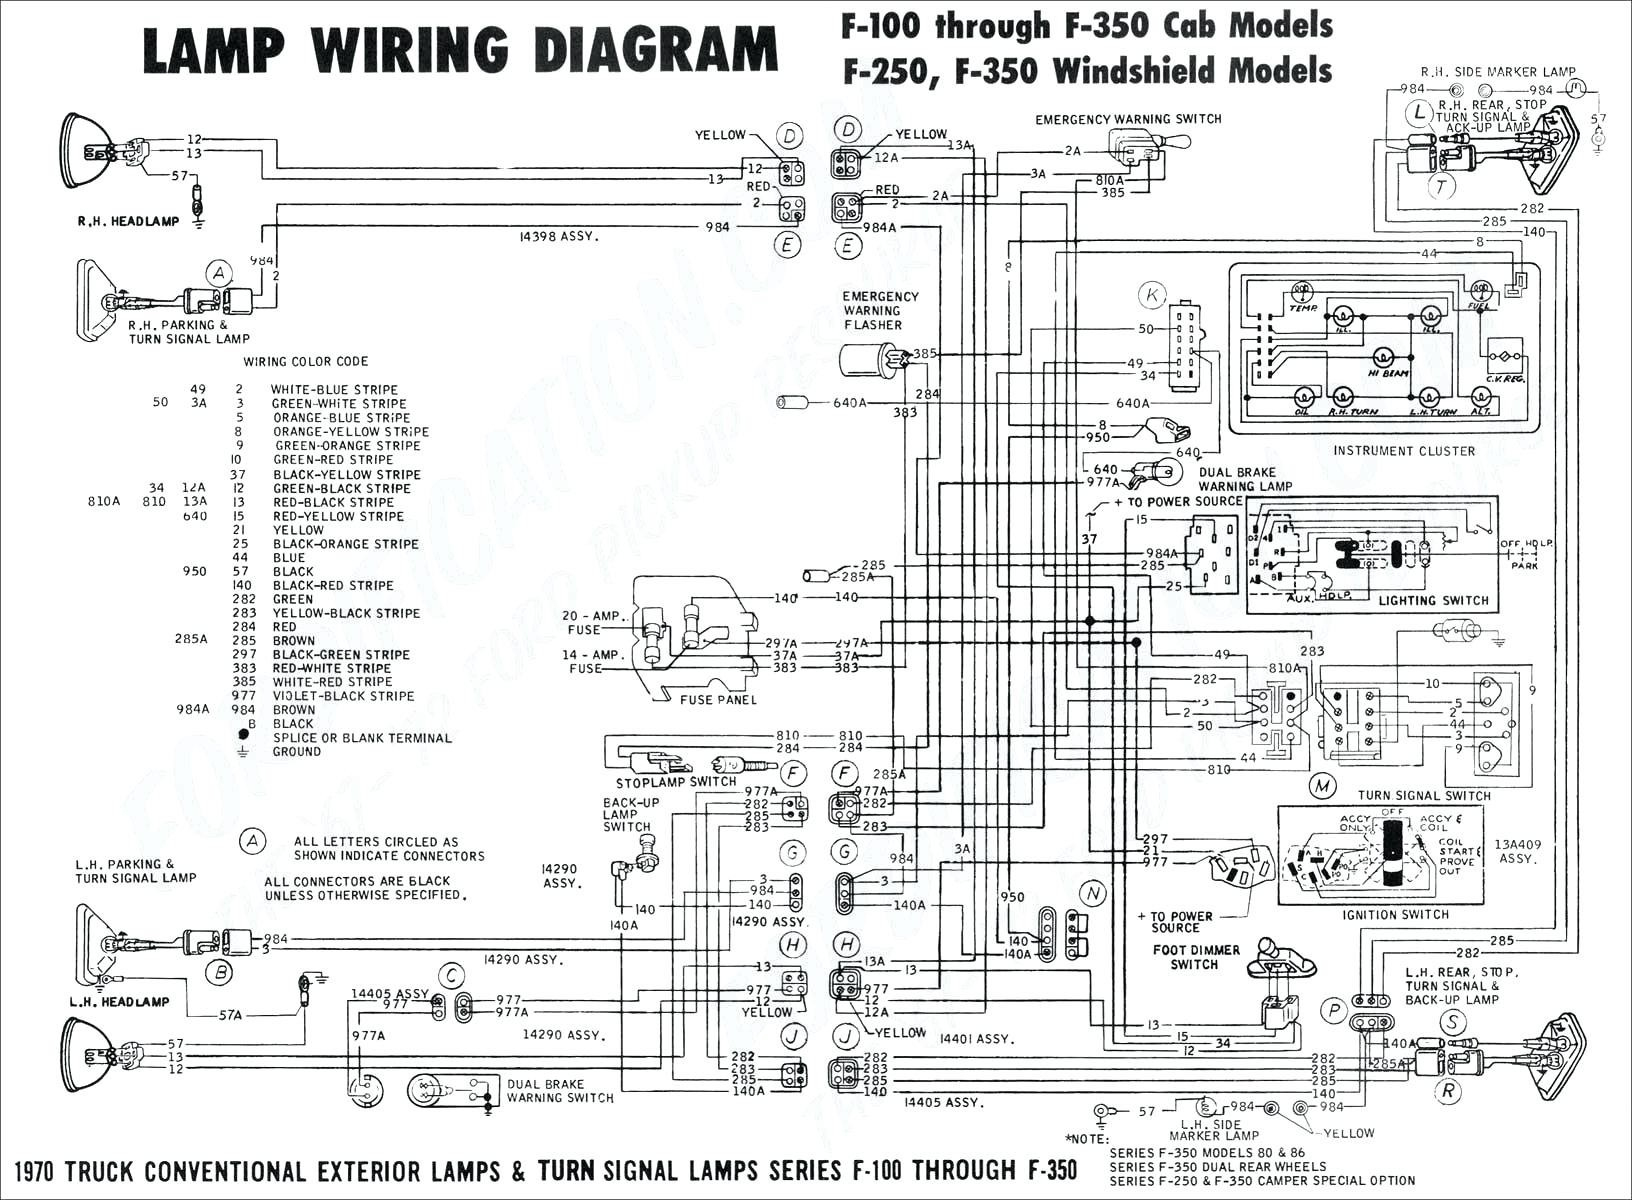 1994 Chevy Truck Brake Light Wiring Diag - Panoramabypatysesma - 1994 Chevy Truck Brake Light Wiring Diagram